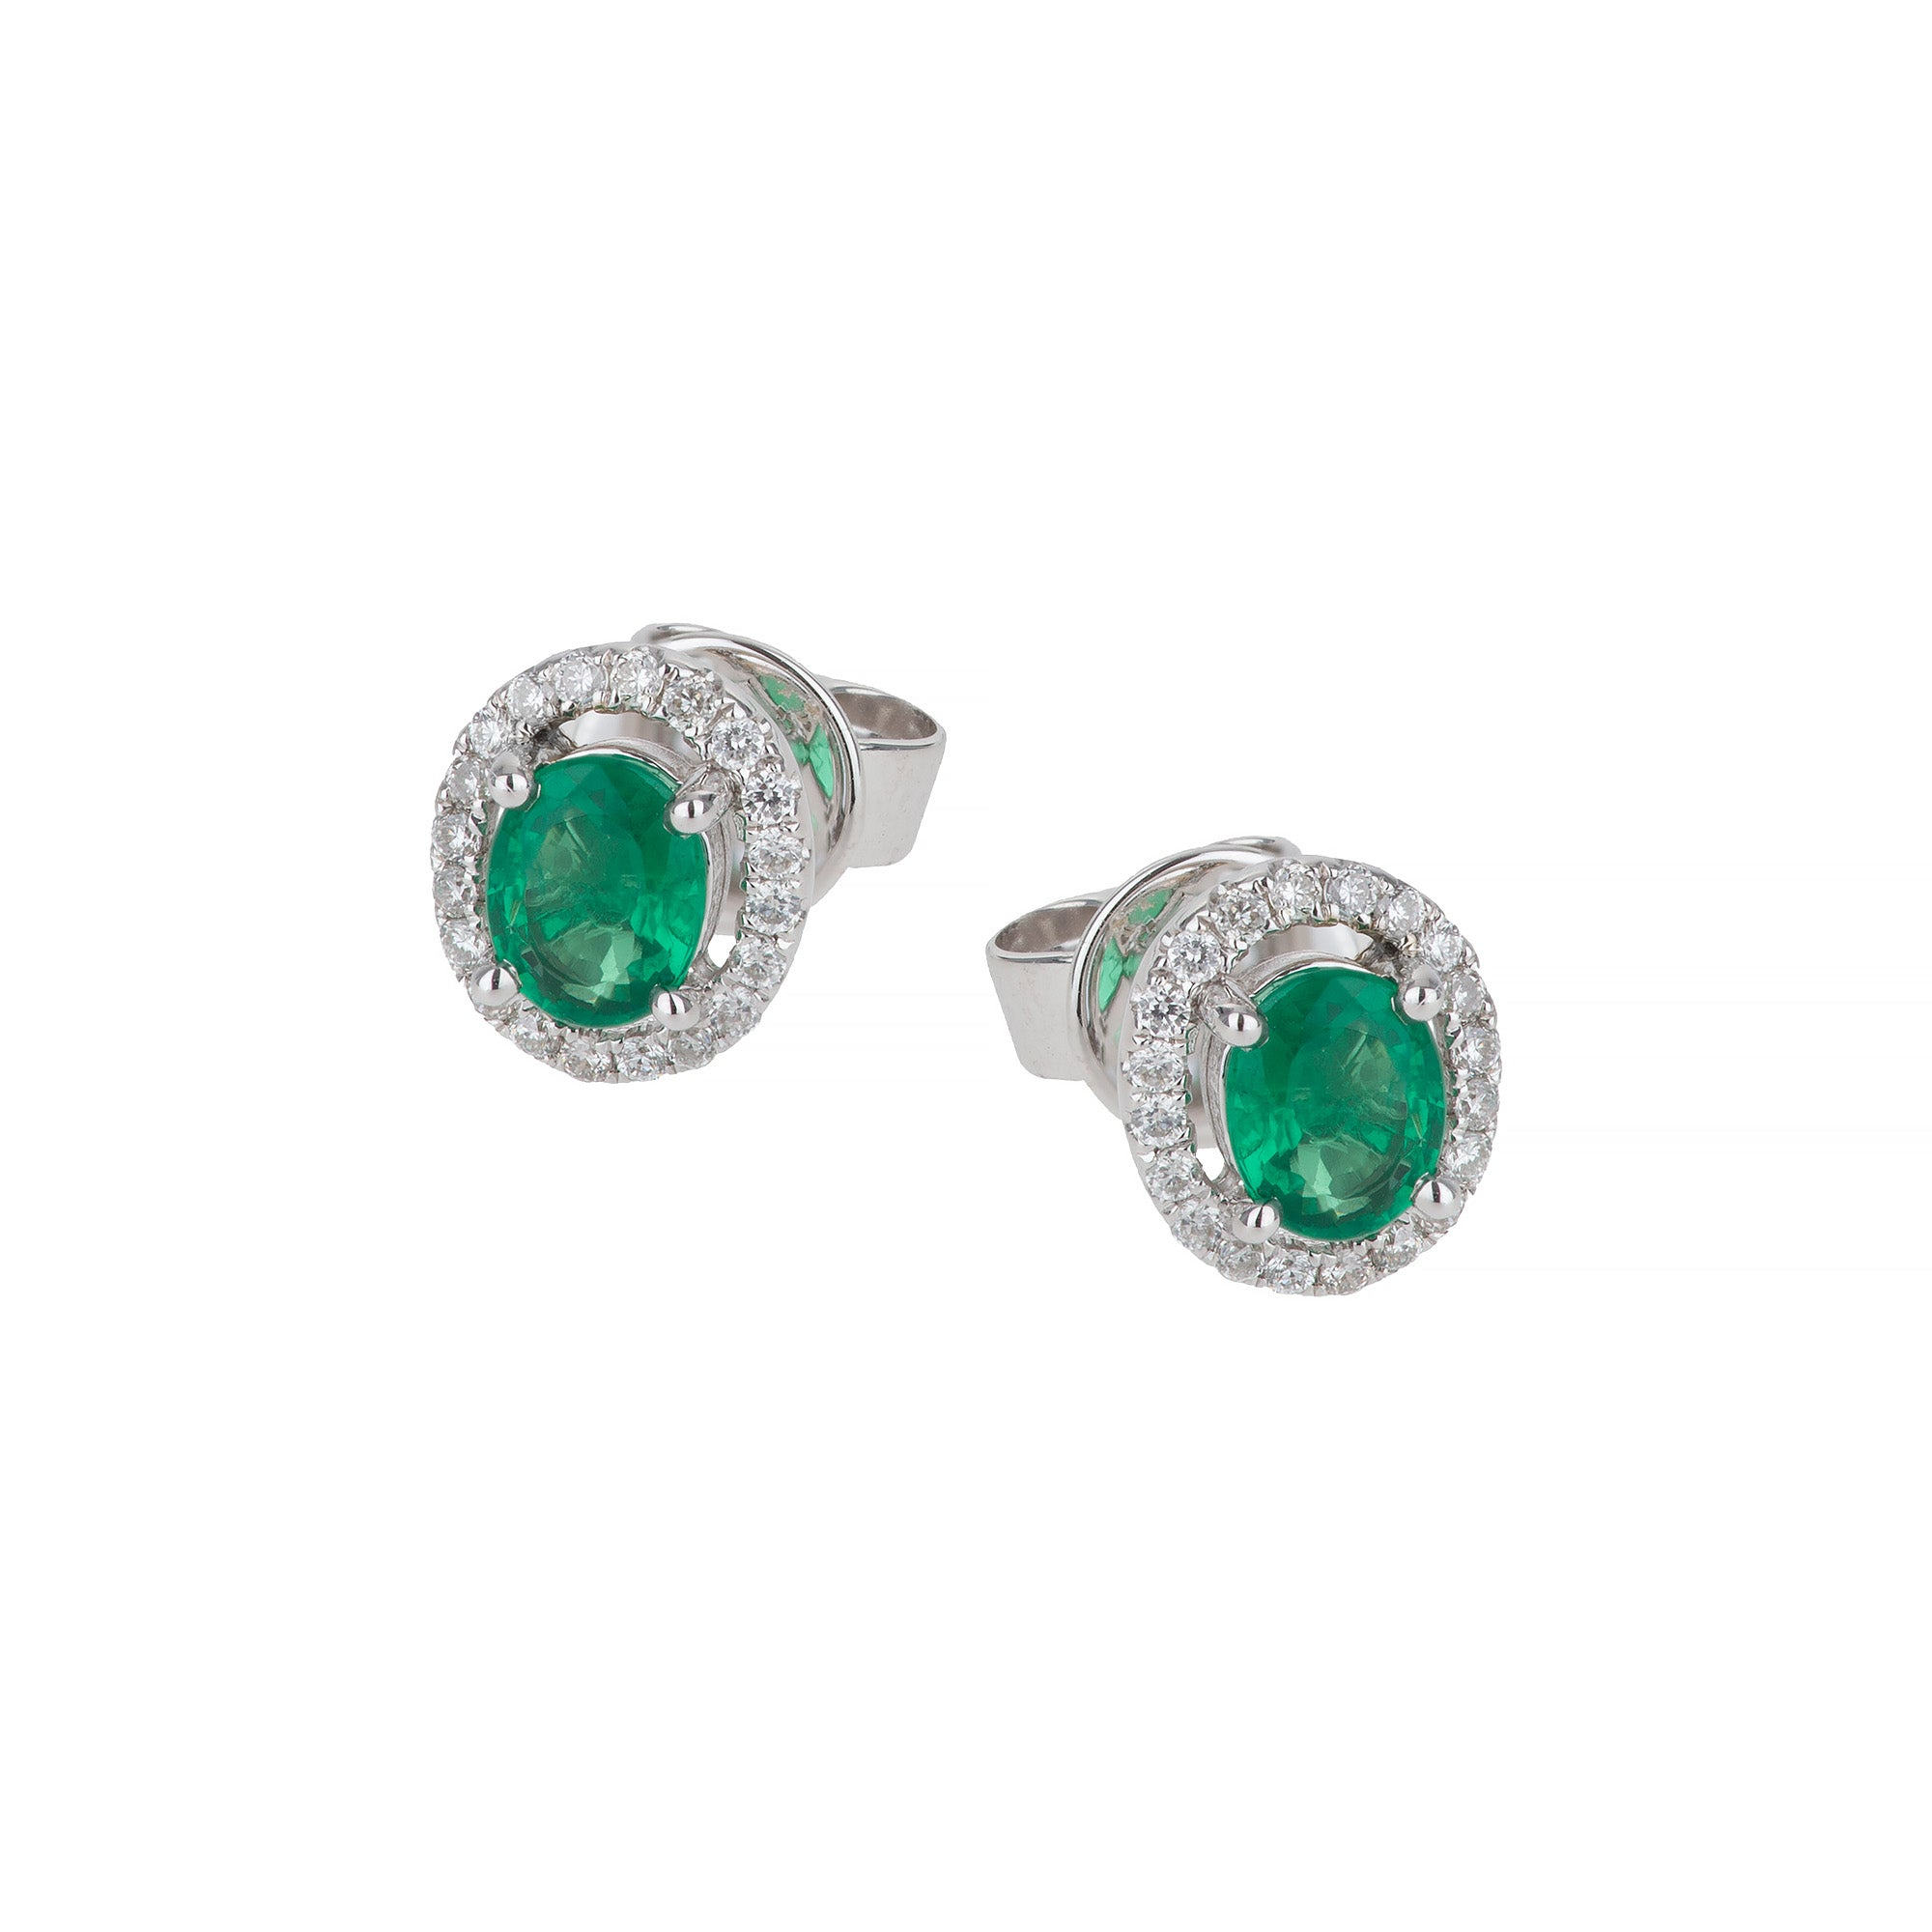 White Gold Emerald & Diamond Studs Earring